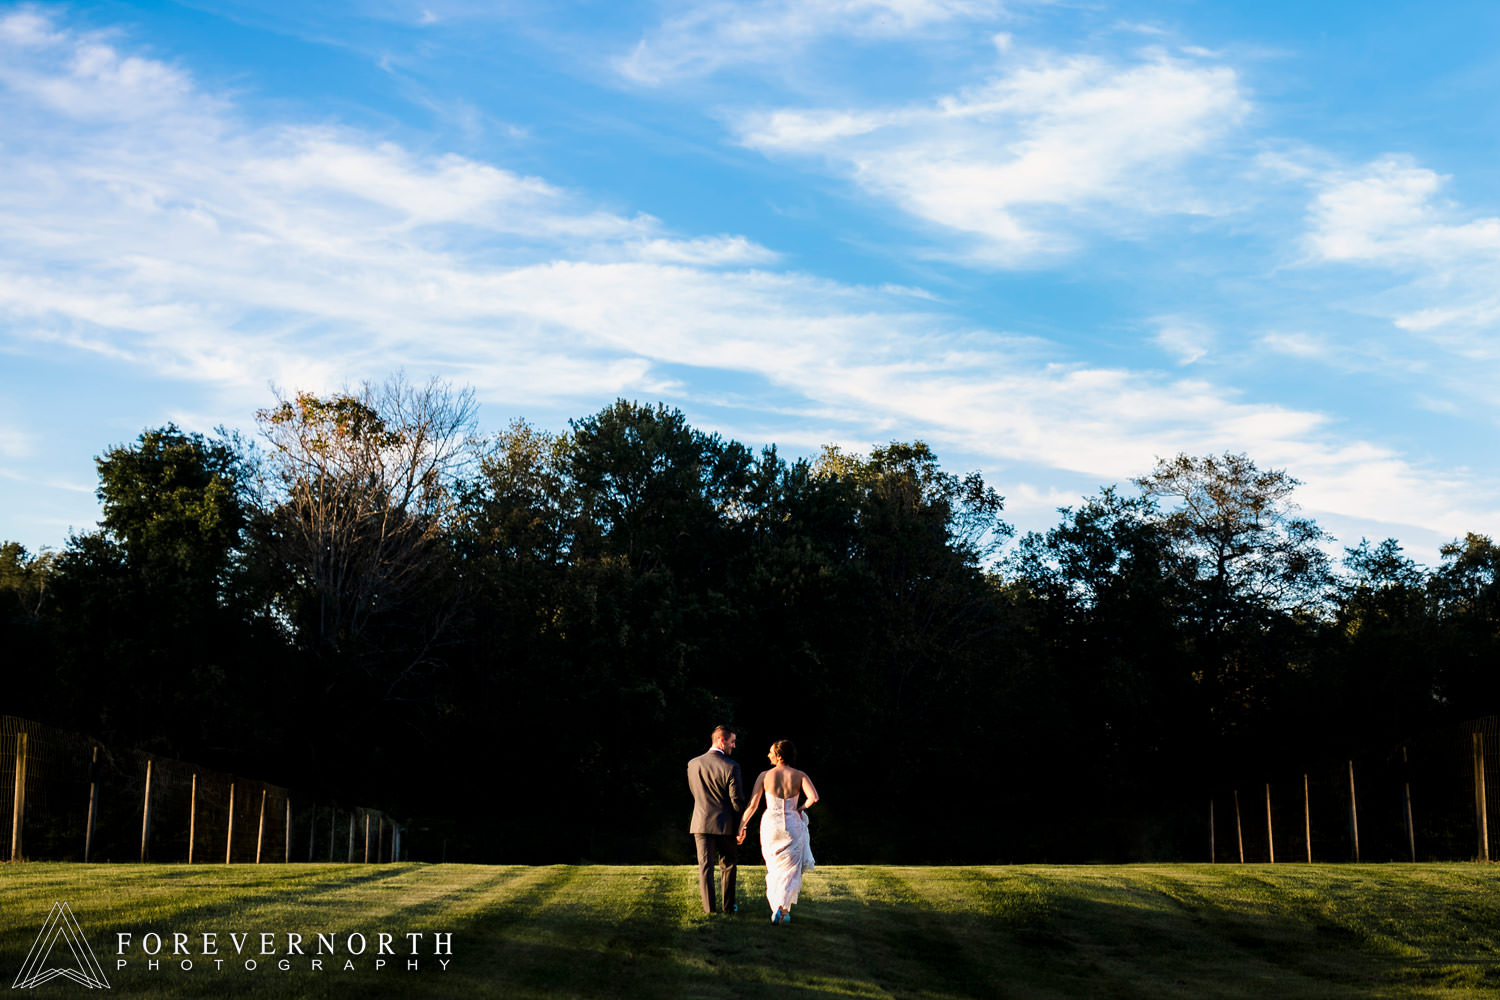 Mendyk-Valenzano-Family-Winery-NJ-Wedding-Photographer-23.JPG